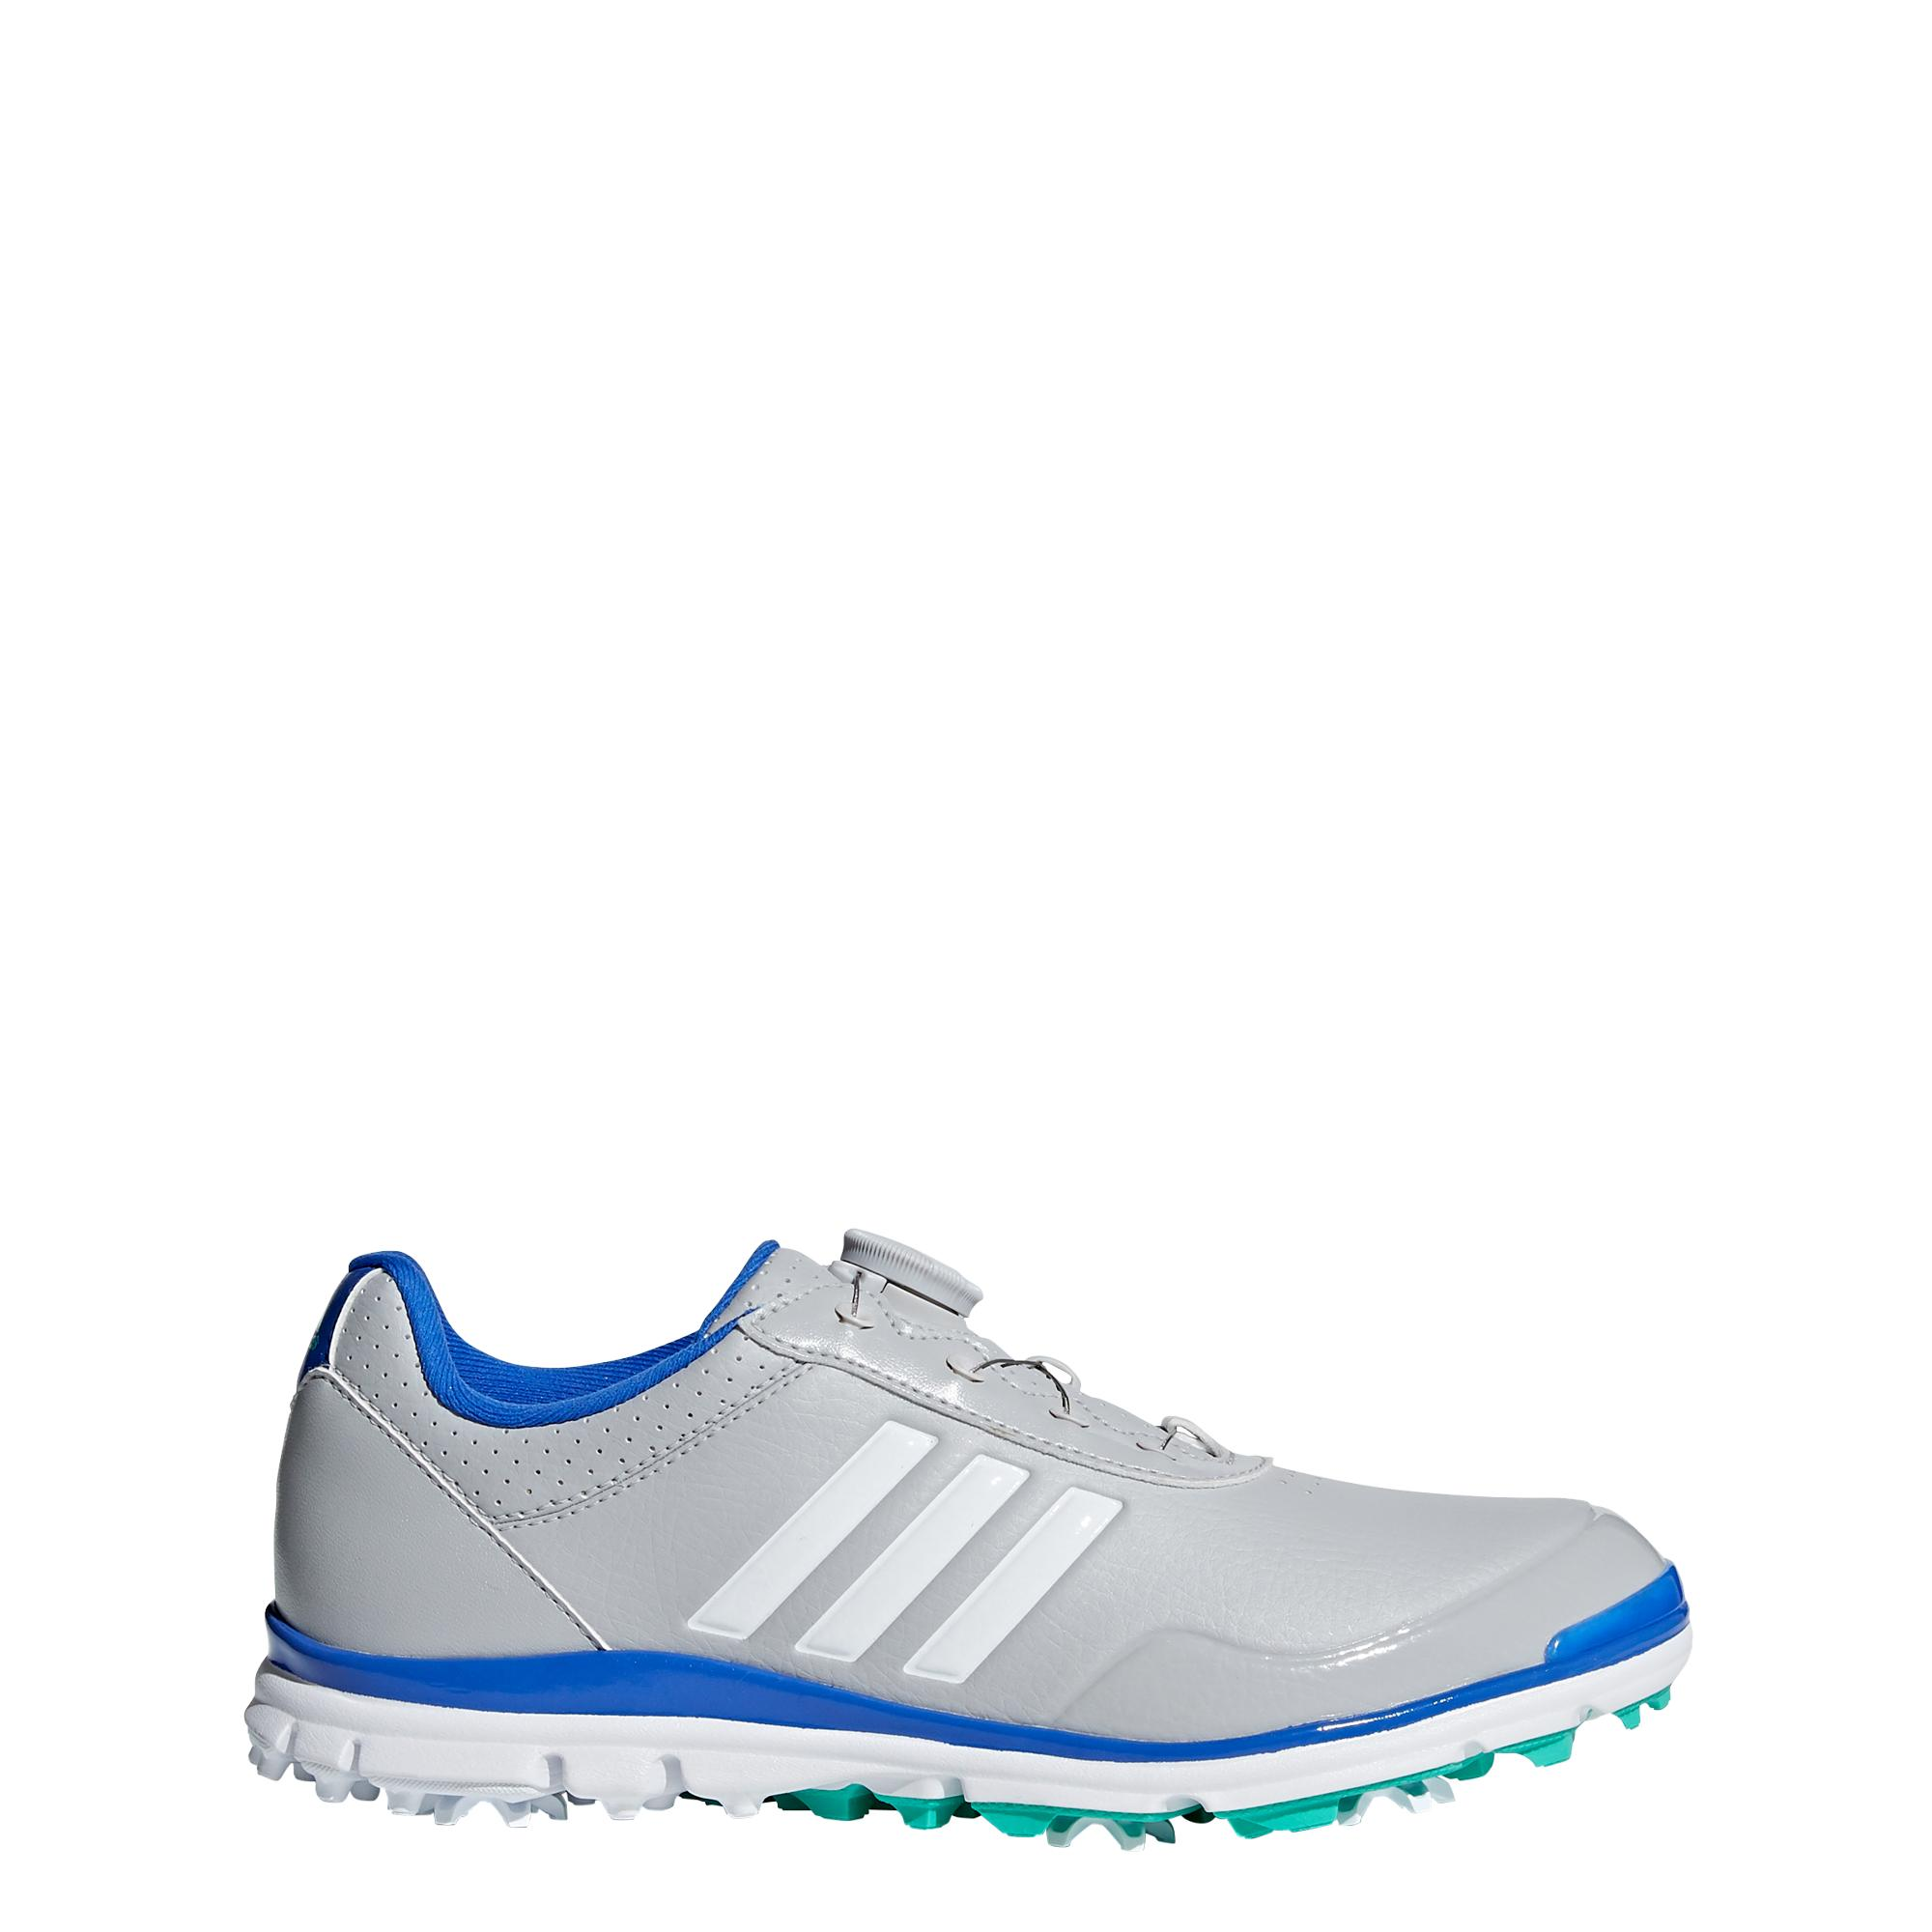 Women's Adistar Lite Boa Spiked Golf Shoe - GRY